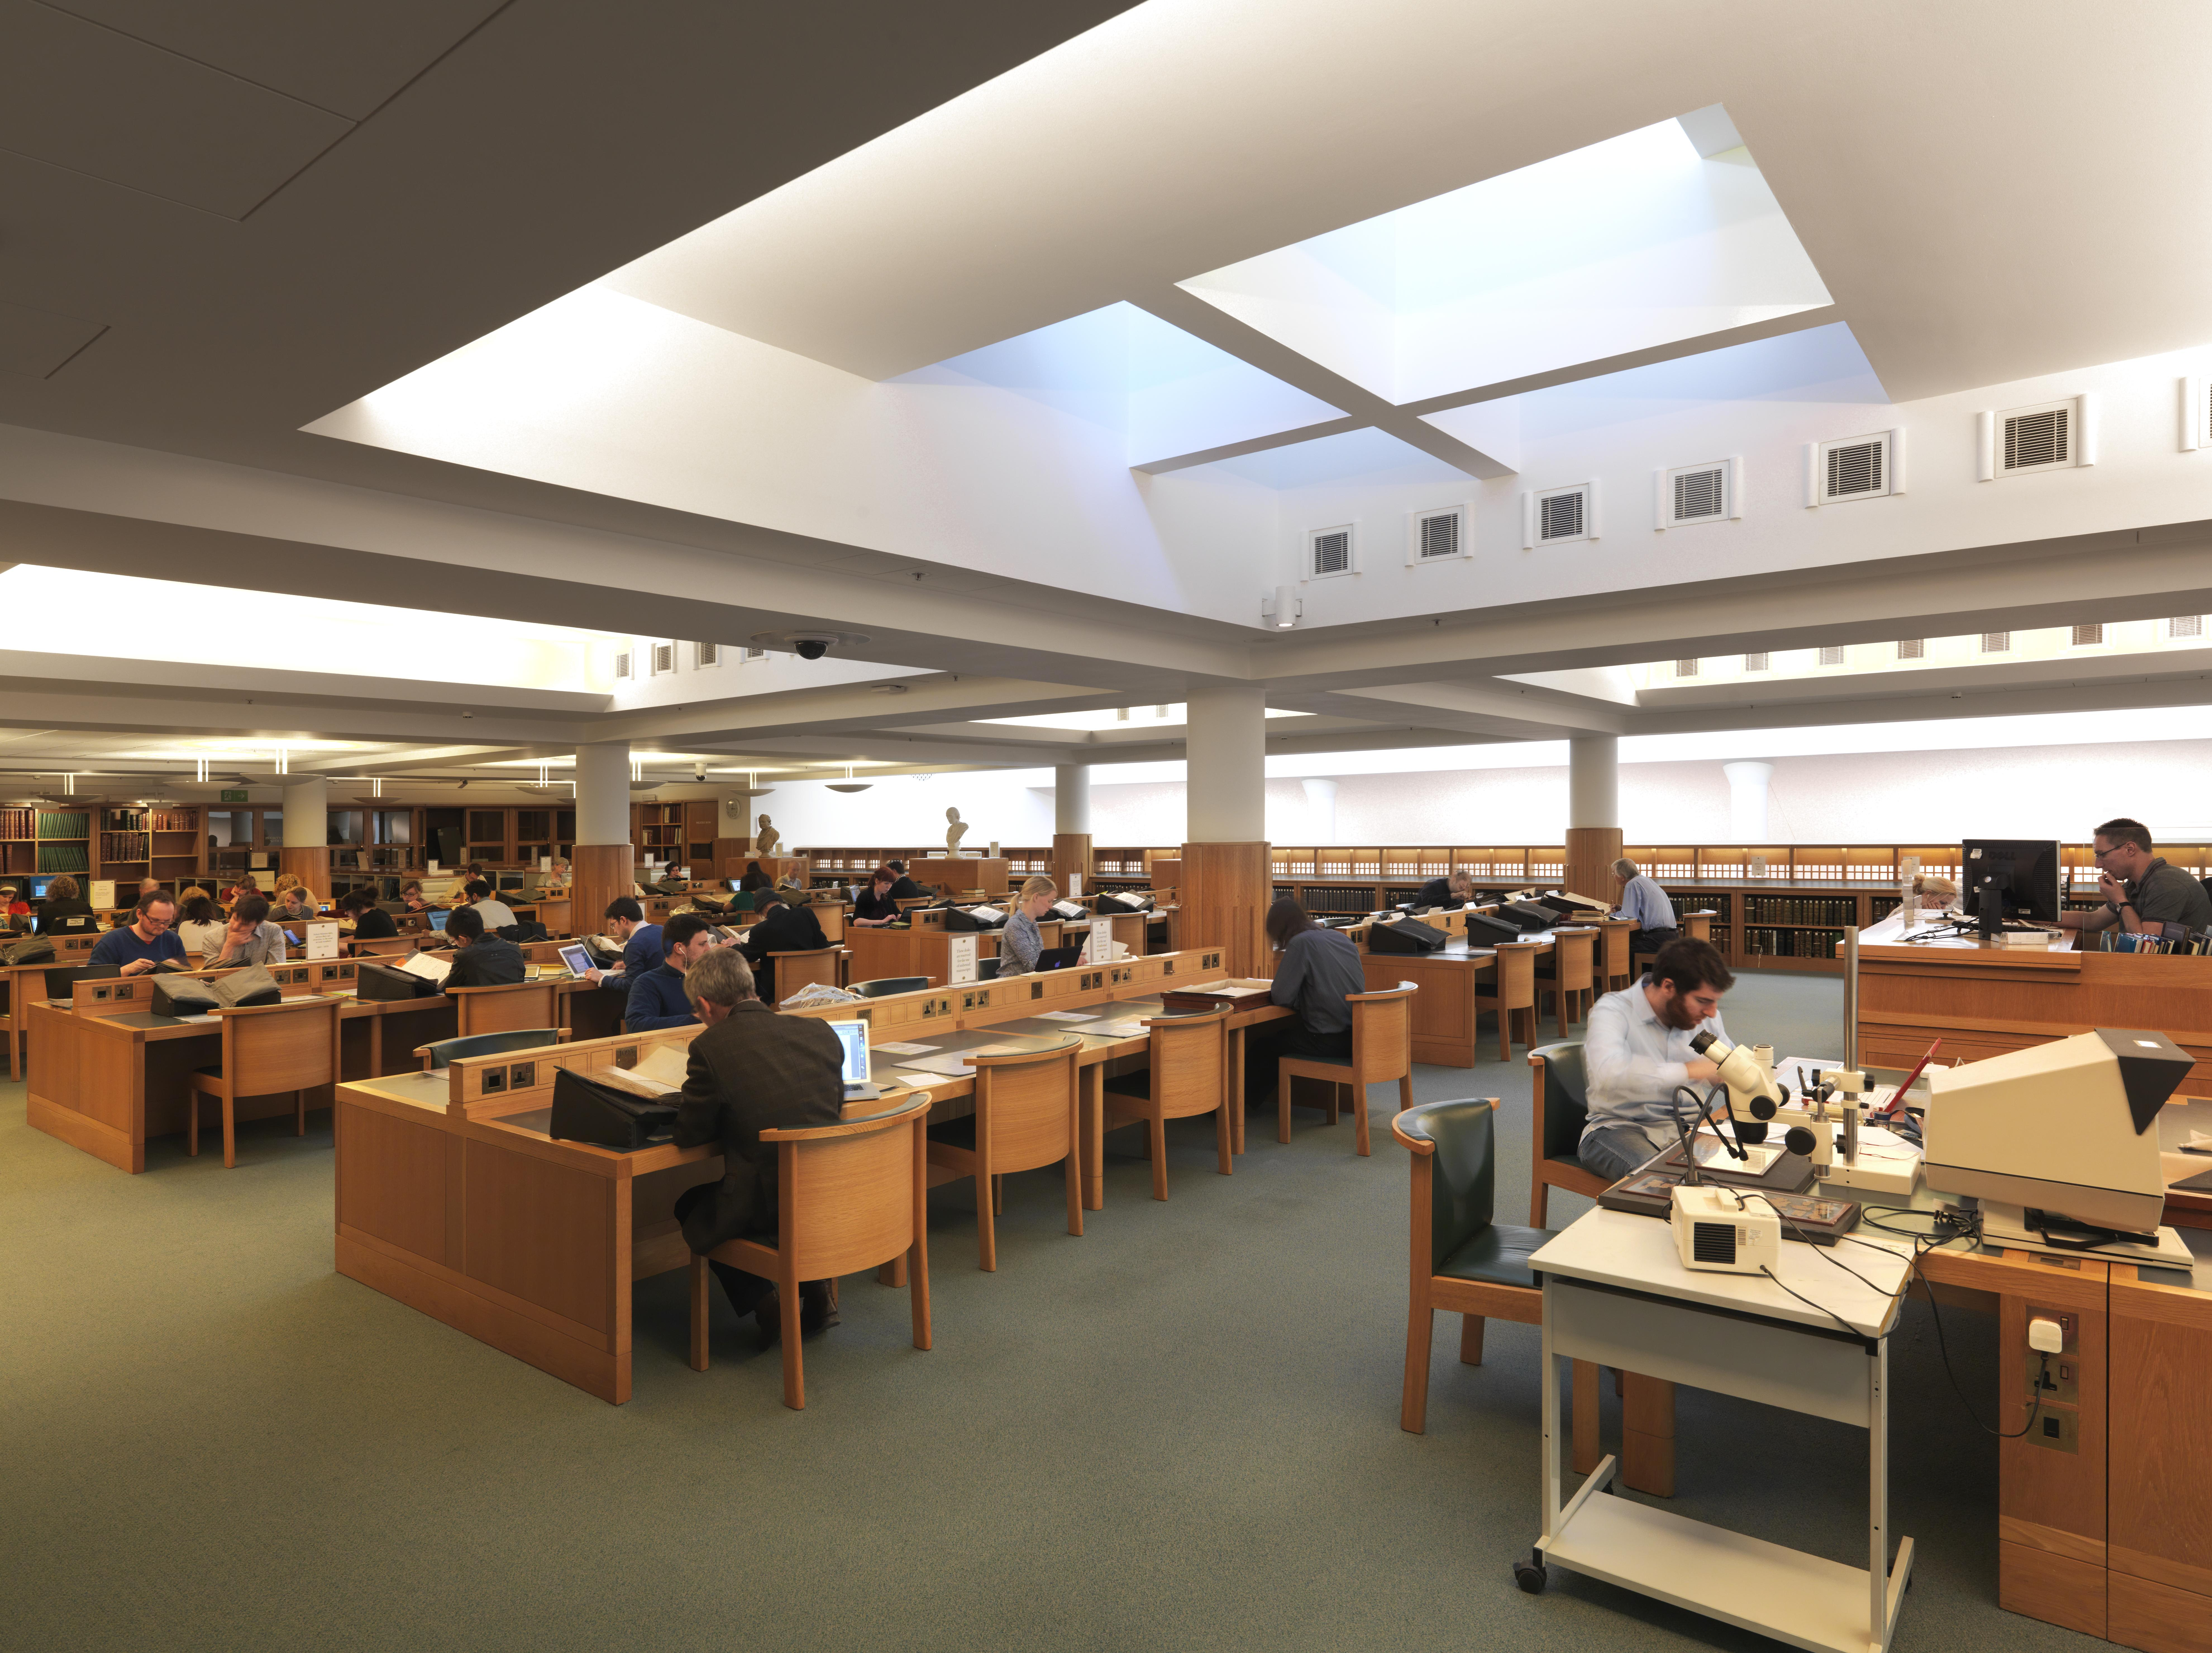 Readers at desks in the Manuscript Reading Room